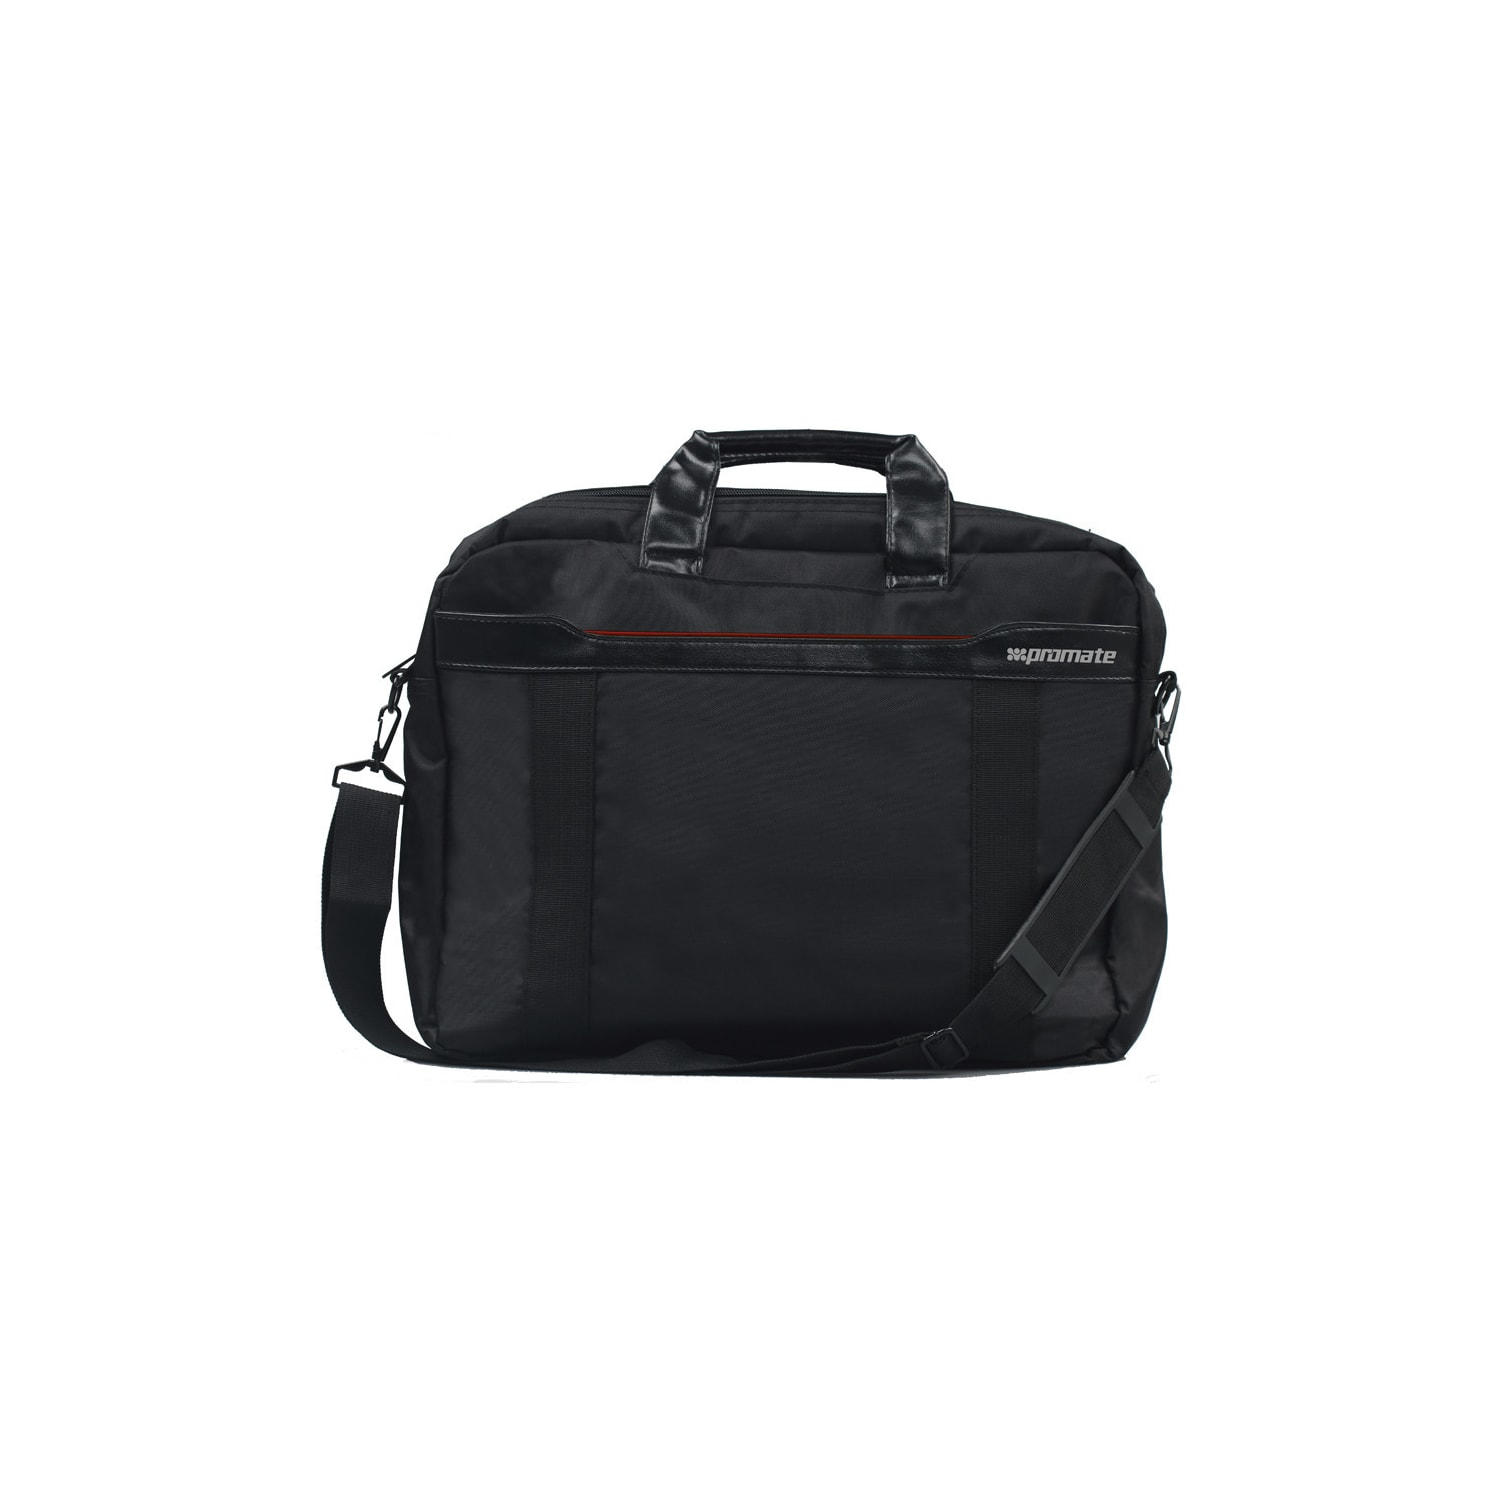 0db7544ea9 Promate  Solo  Lightweight Messenger Bag With Front Storage Option For Laptops  Up To 15.6